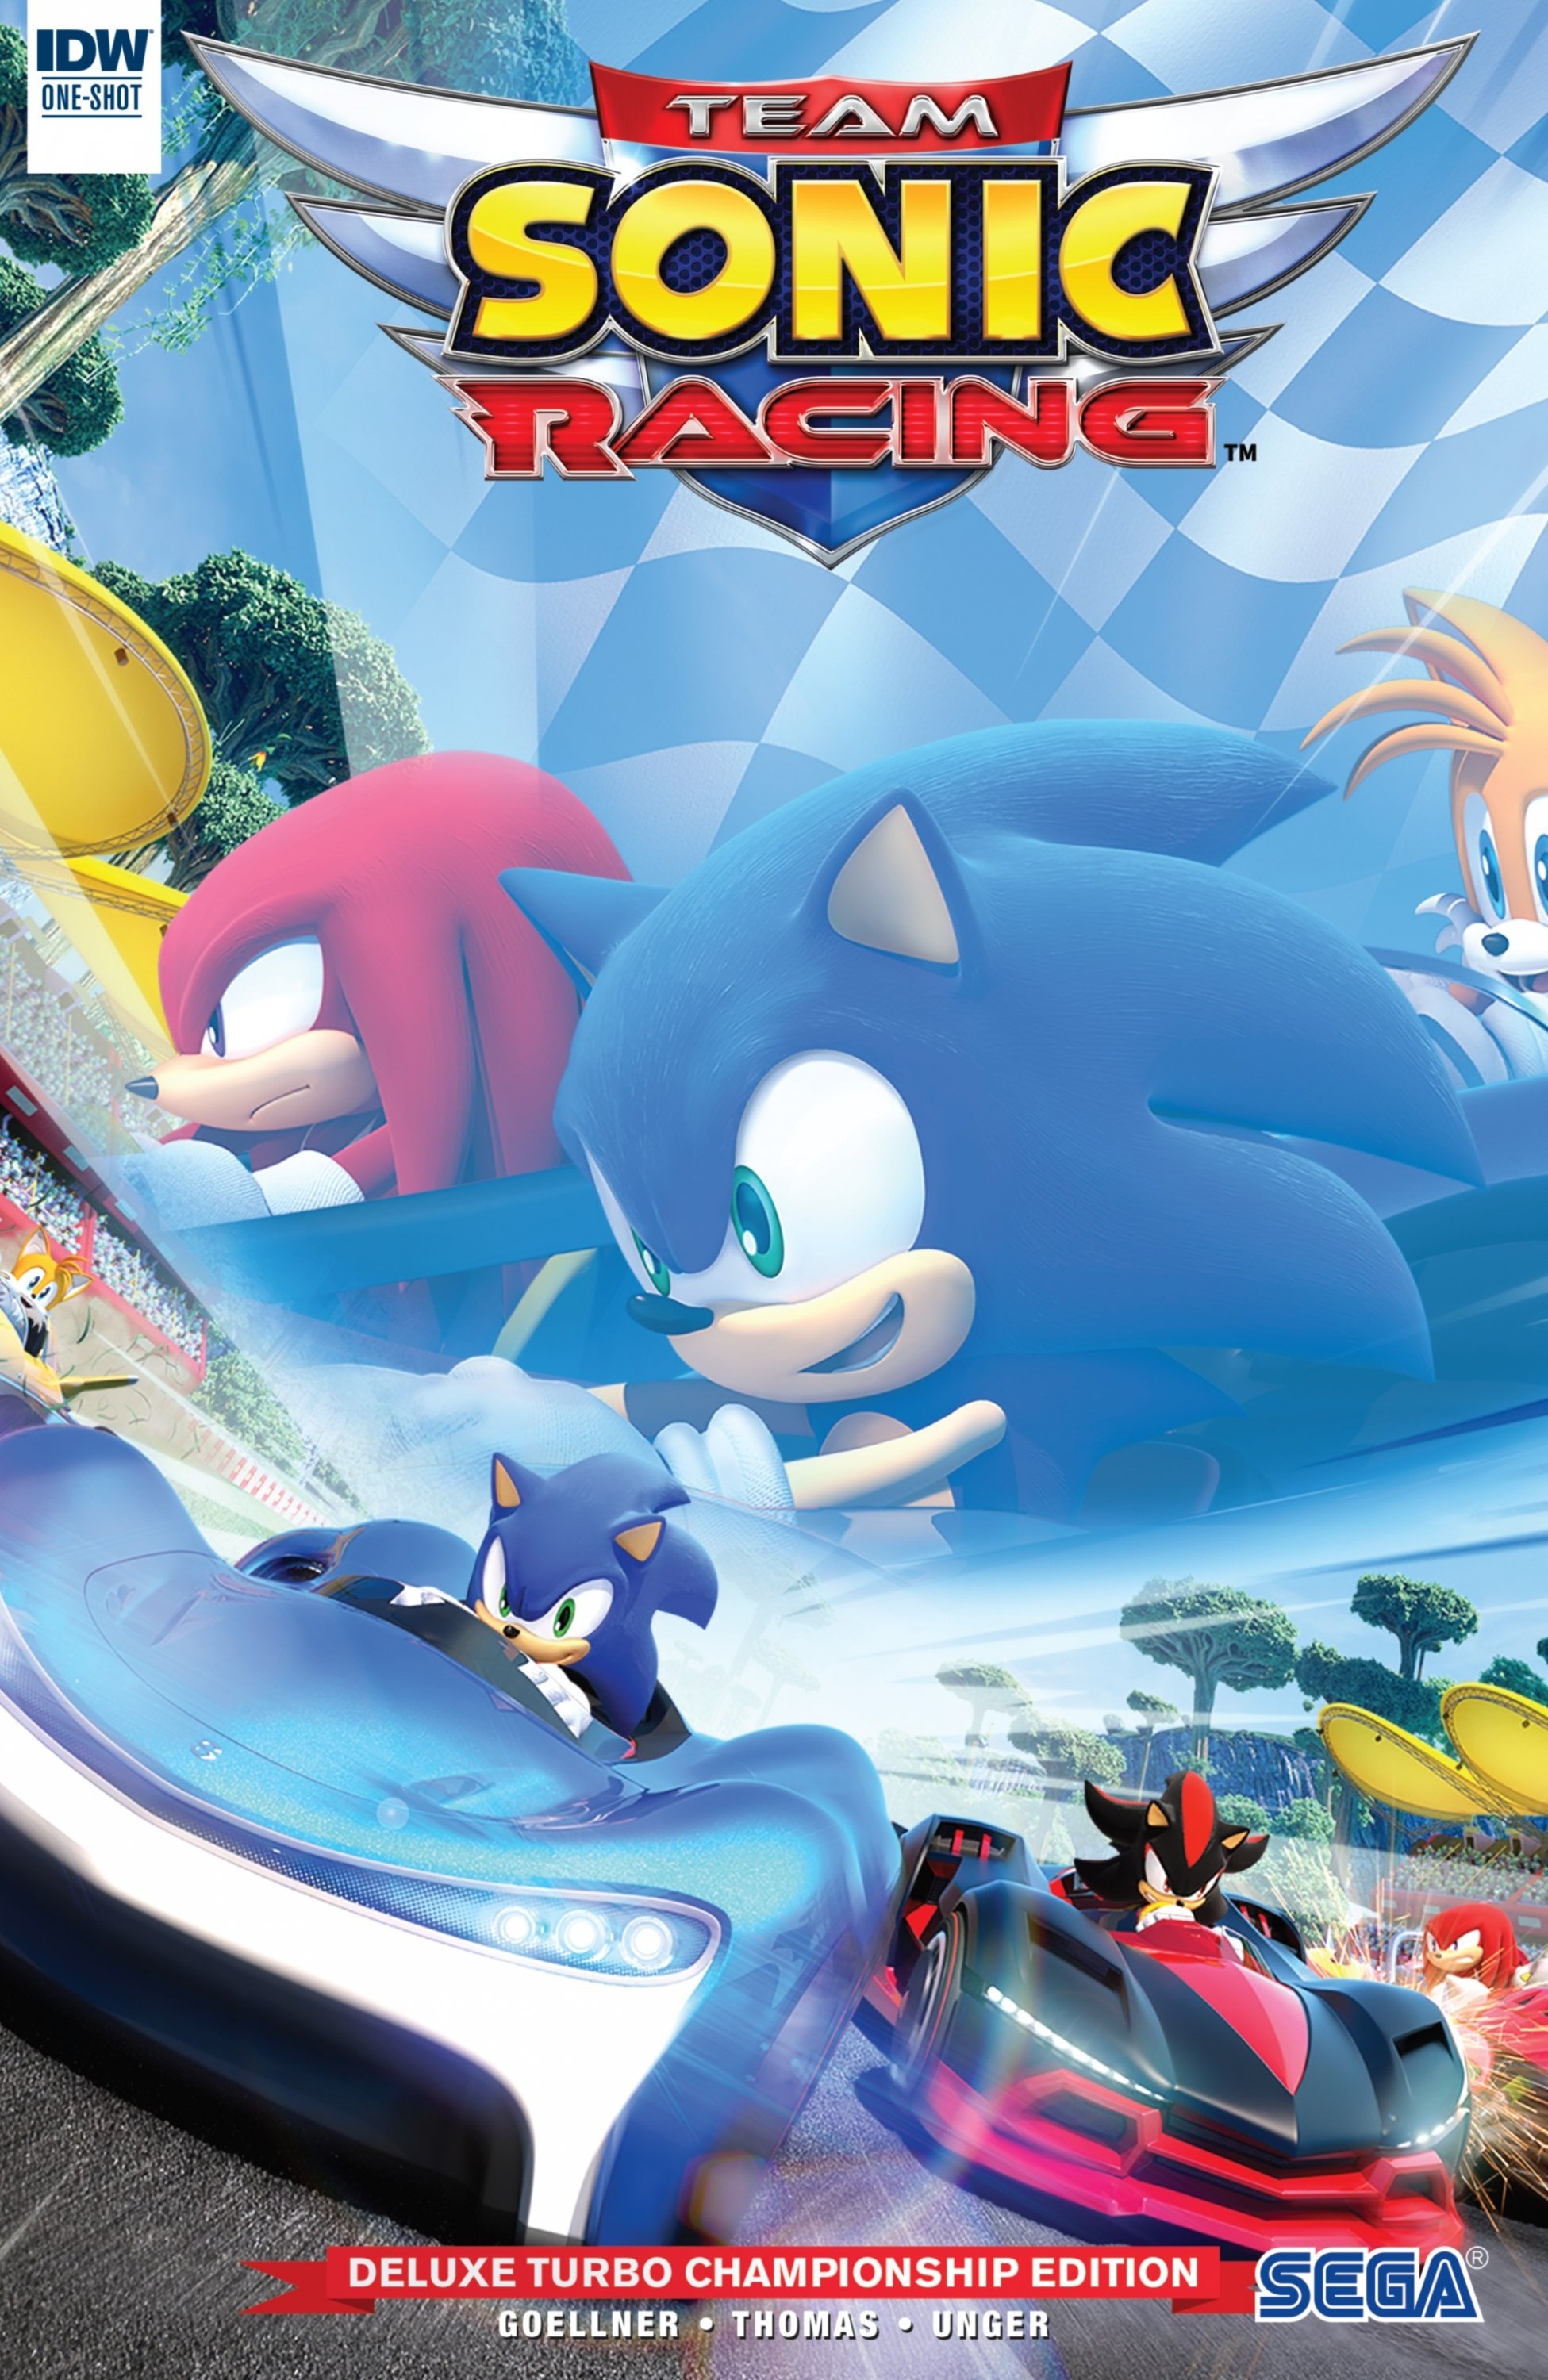 Team Sonic Racing Deluxe Turbo Championship Edition (May 2019)